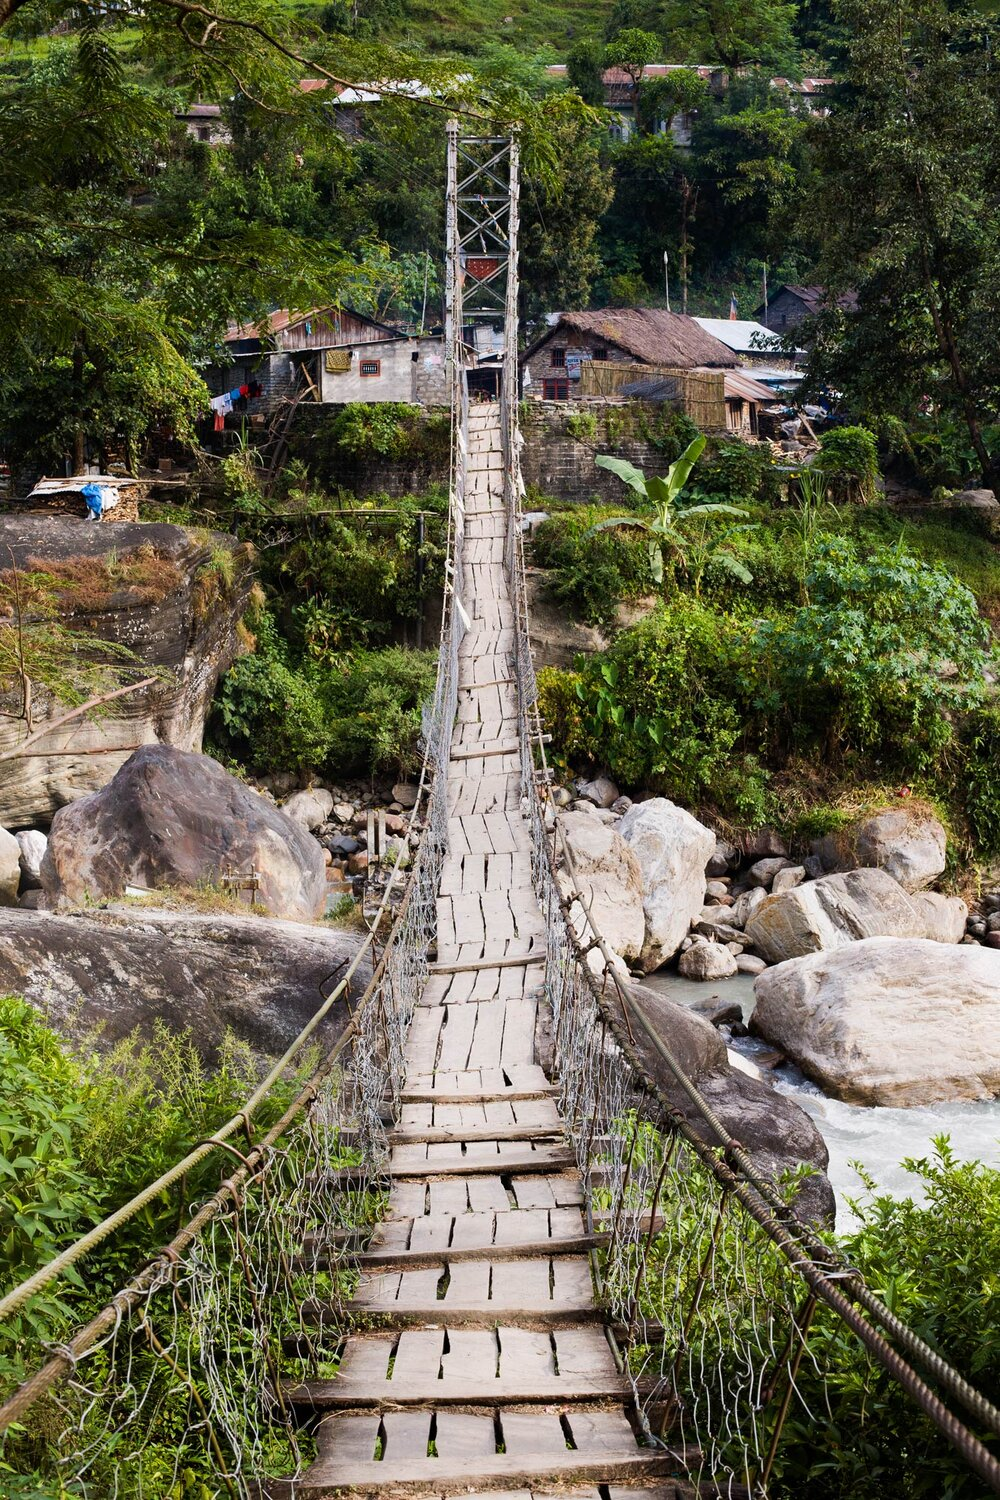 Footbridge in the foothills. Annapurna region